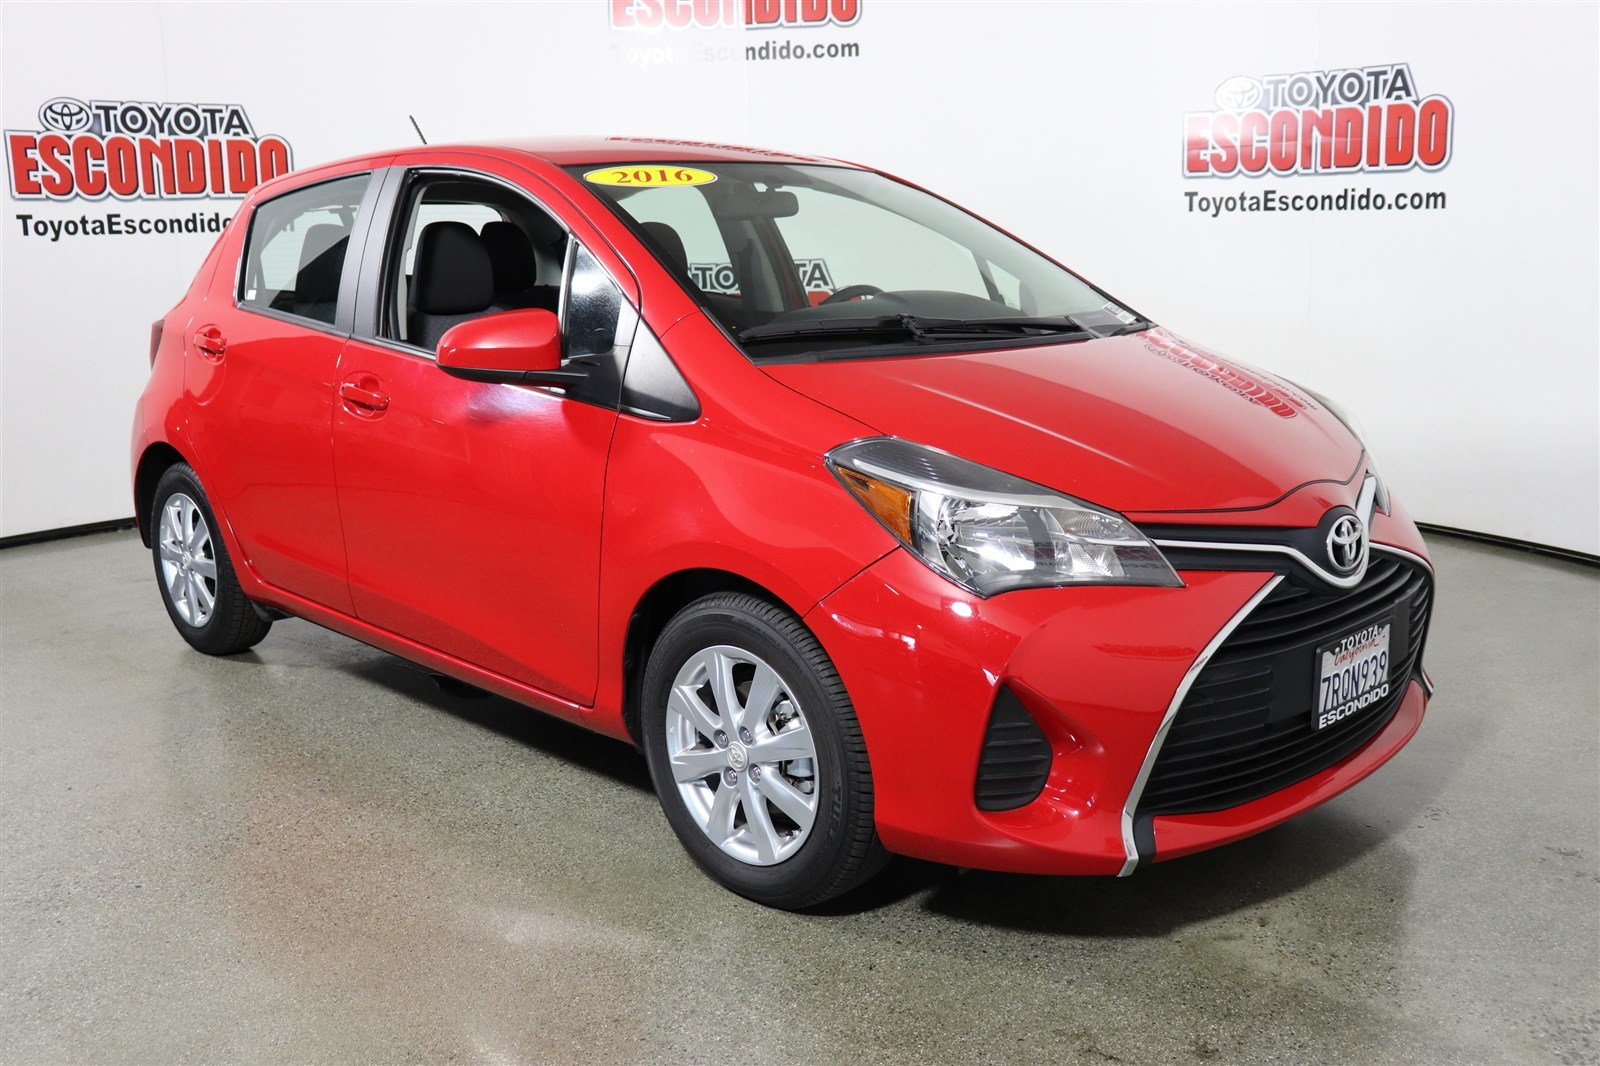 news com autoguide sedan toyota yaris review manufacturer